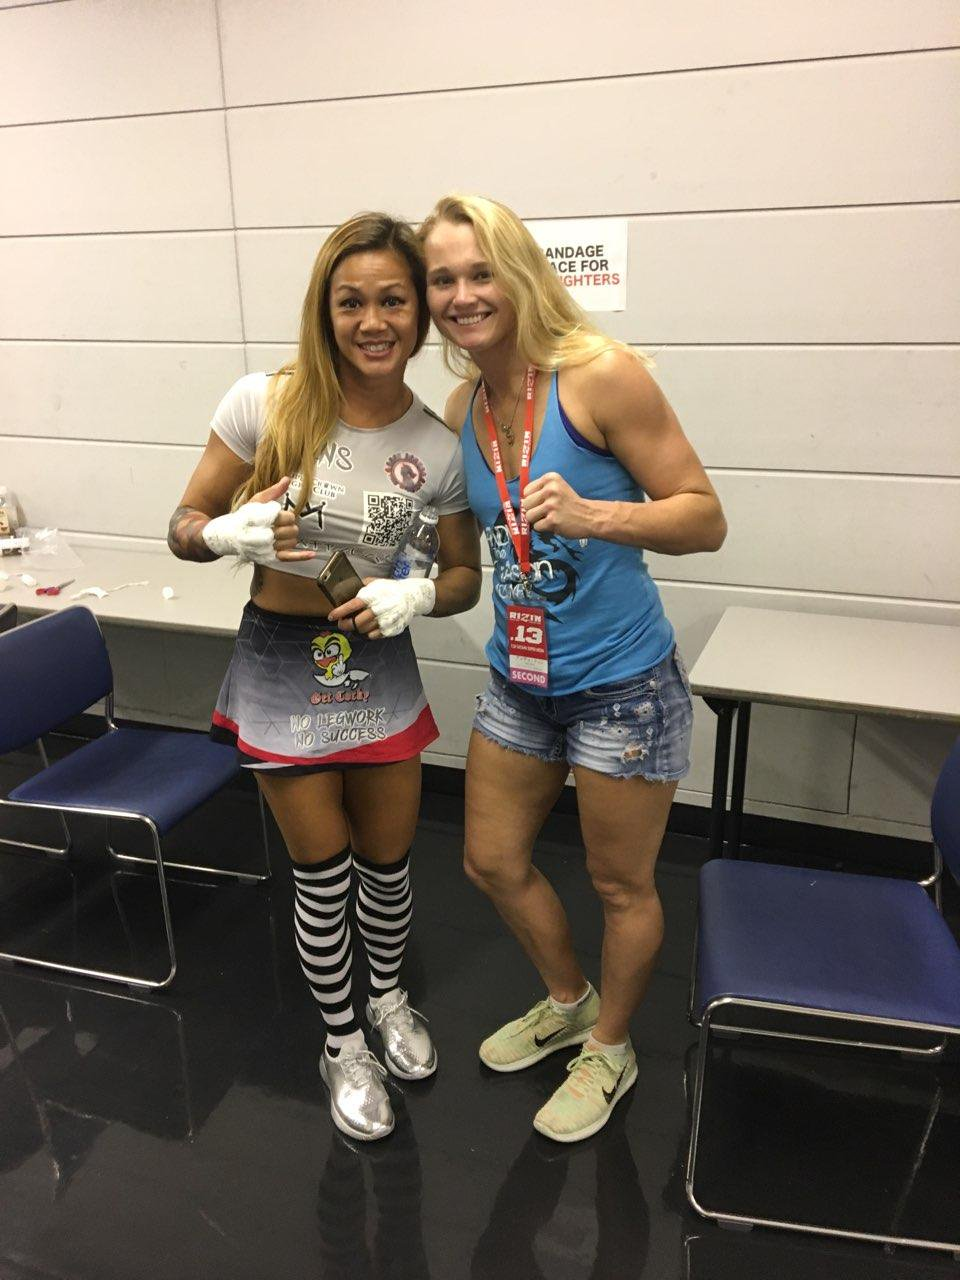 Andy Nguyen and Andrea Lee